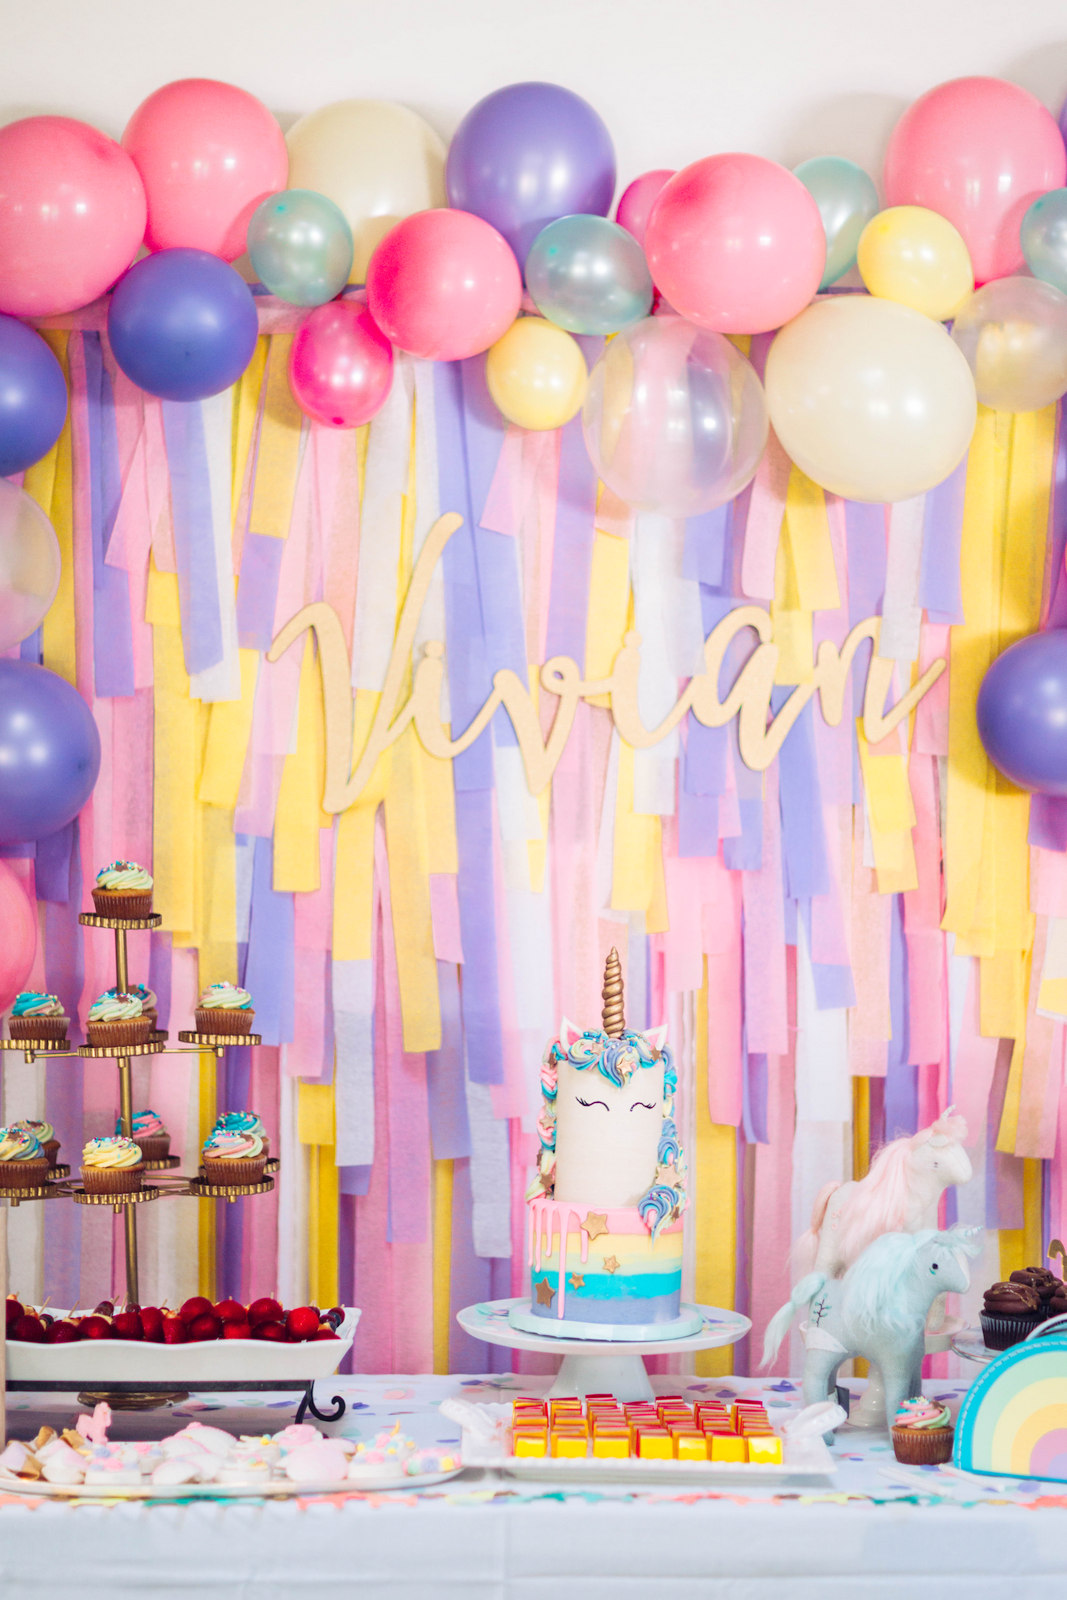 A Magical Unicorn Birthday Party - Vivan's 3rd Birthday! by Utah mom blogger Sandy A La Mode